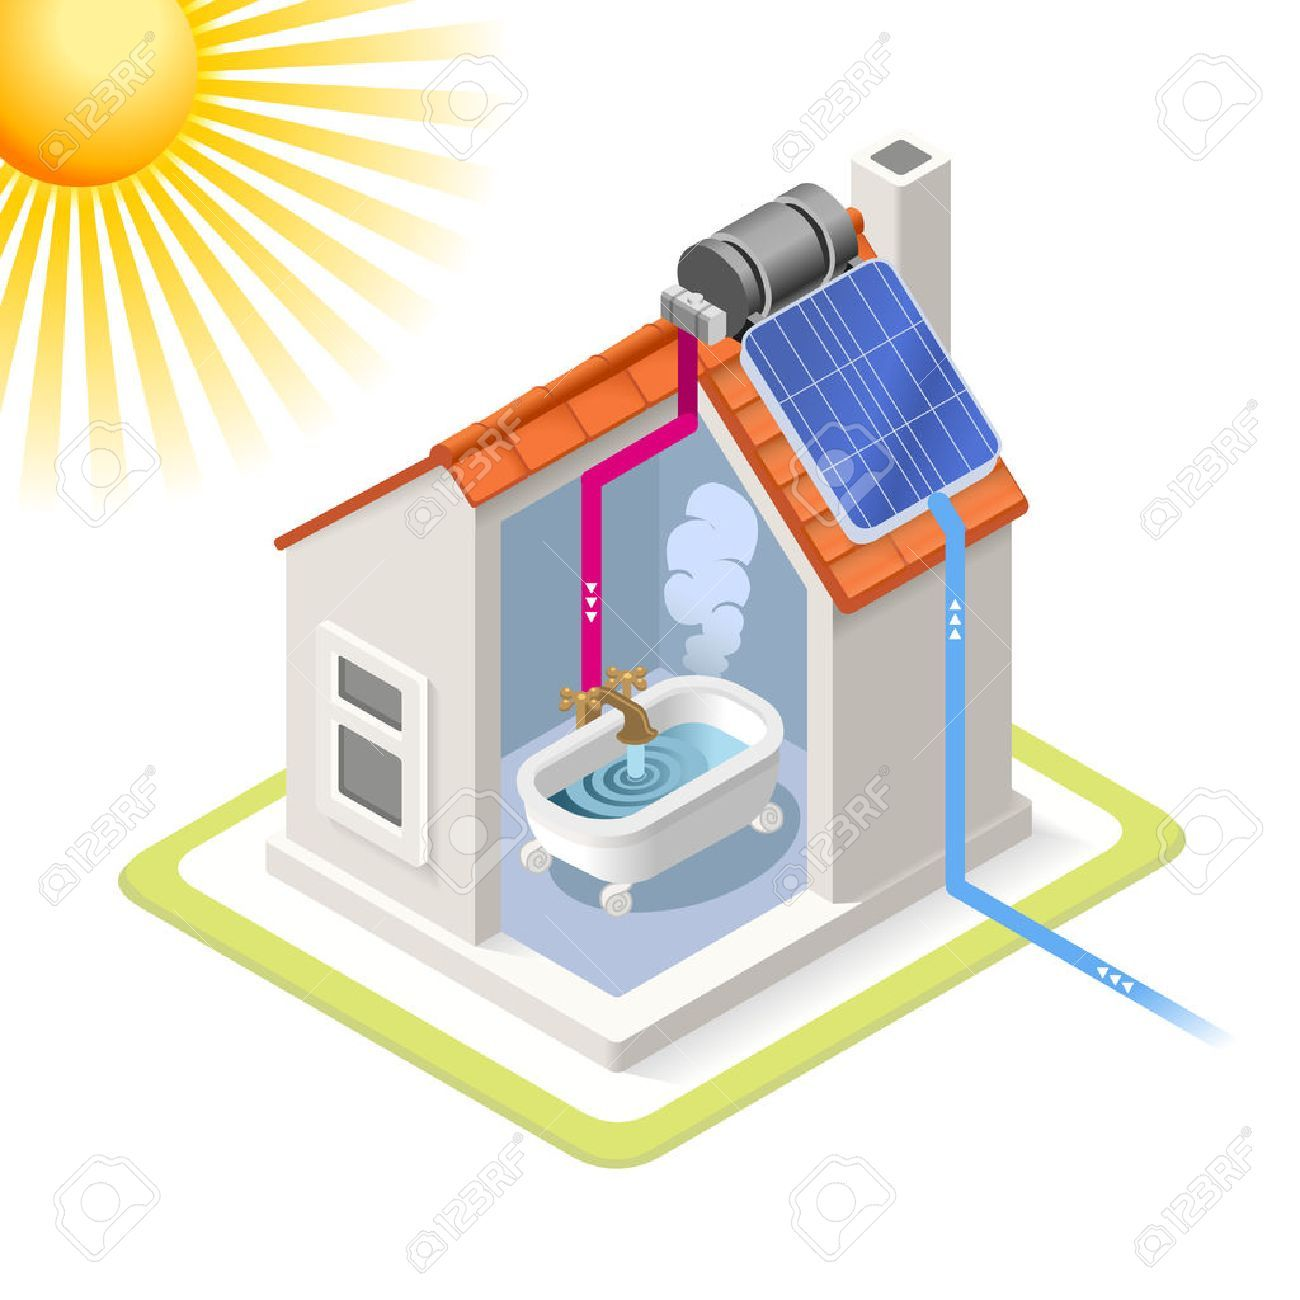 Solar panels on houses clipart » Clipart Portal.